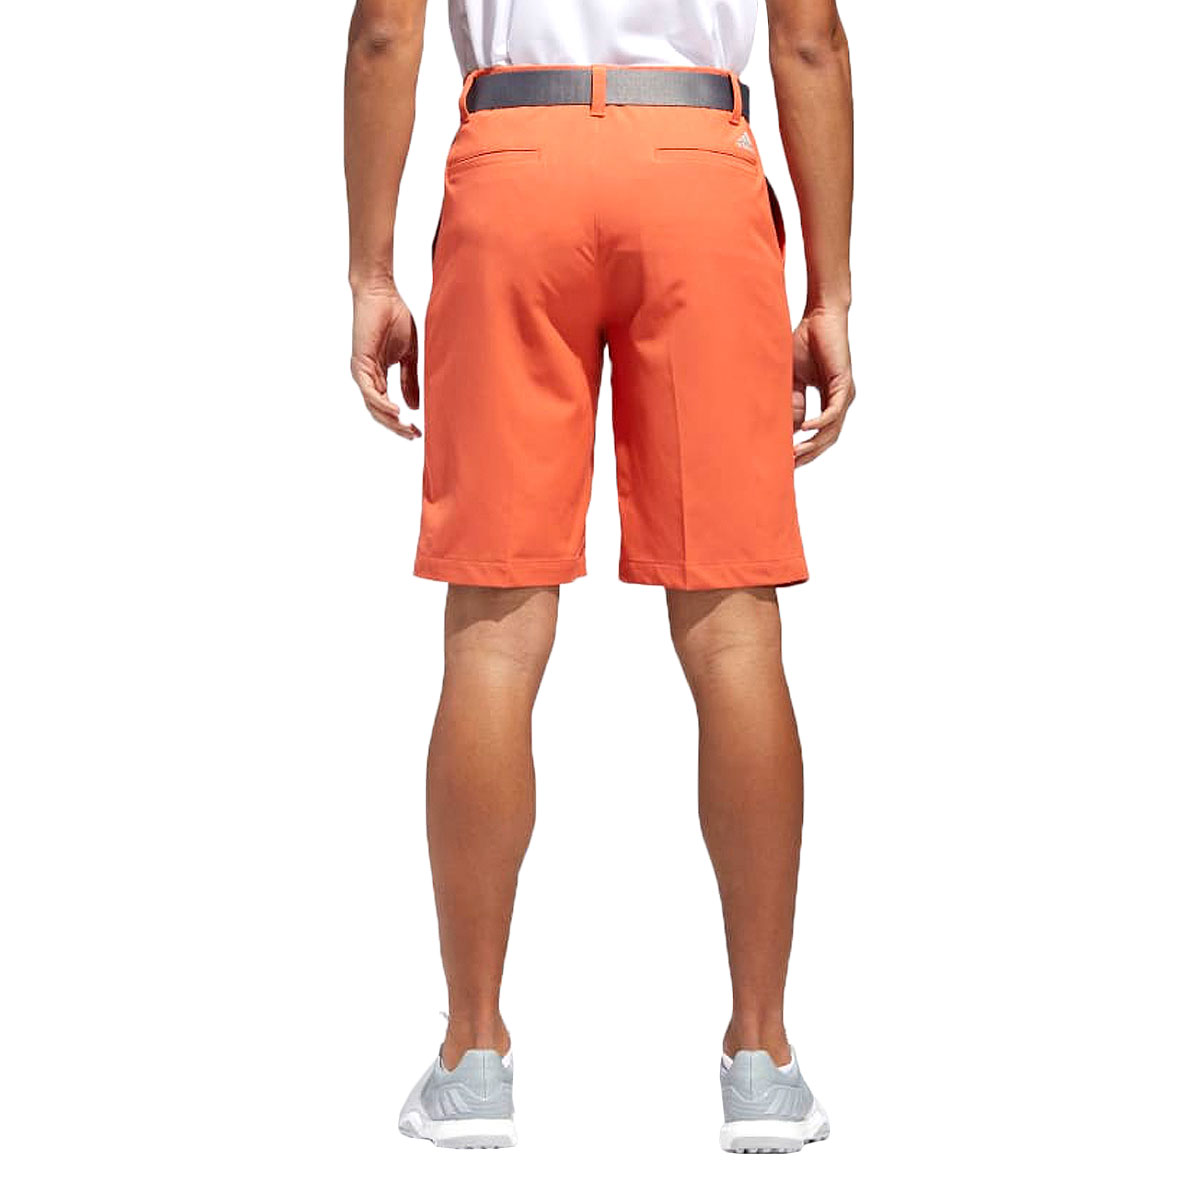 adidas-Golf-Mens-Ultimate365-10-5-034-Inseam-Shorts-47-OFF-RRP thumbnail 9